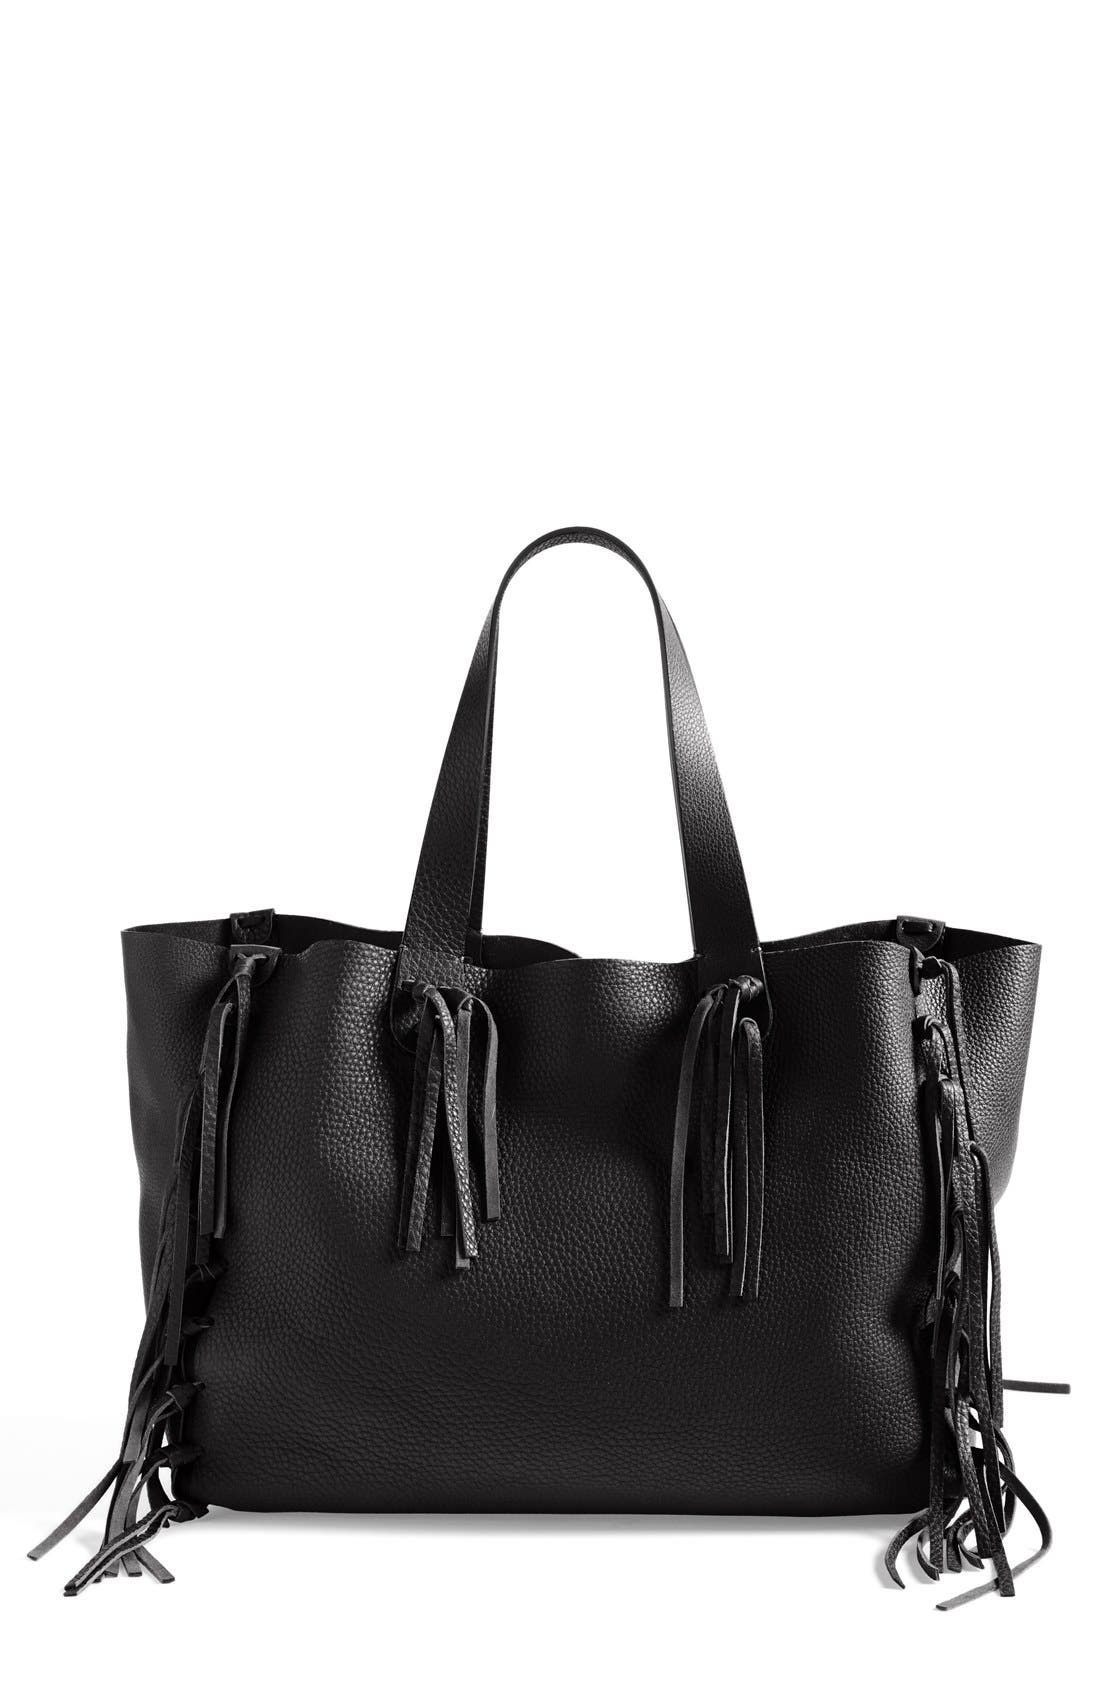 Alternate Image 1 Selected - VALENTINO GARAVANI 'C-Rockee' Fringed Tote